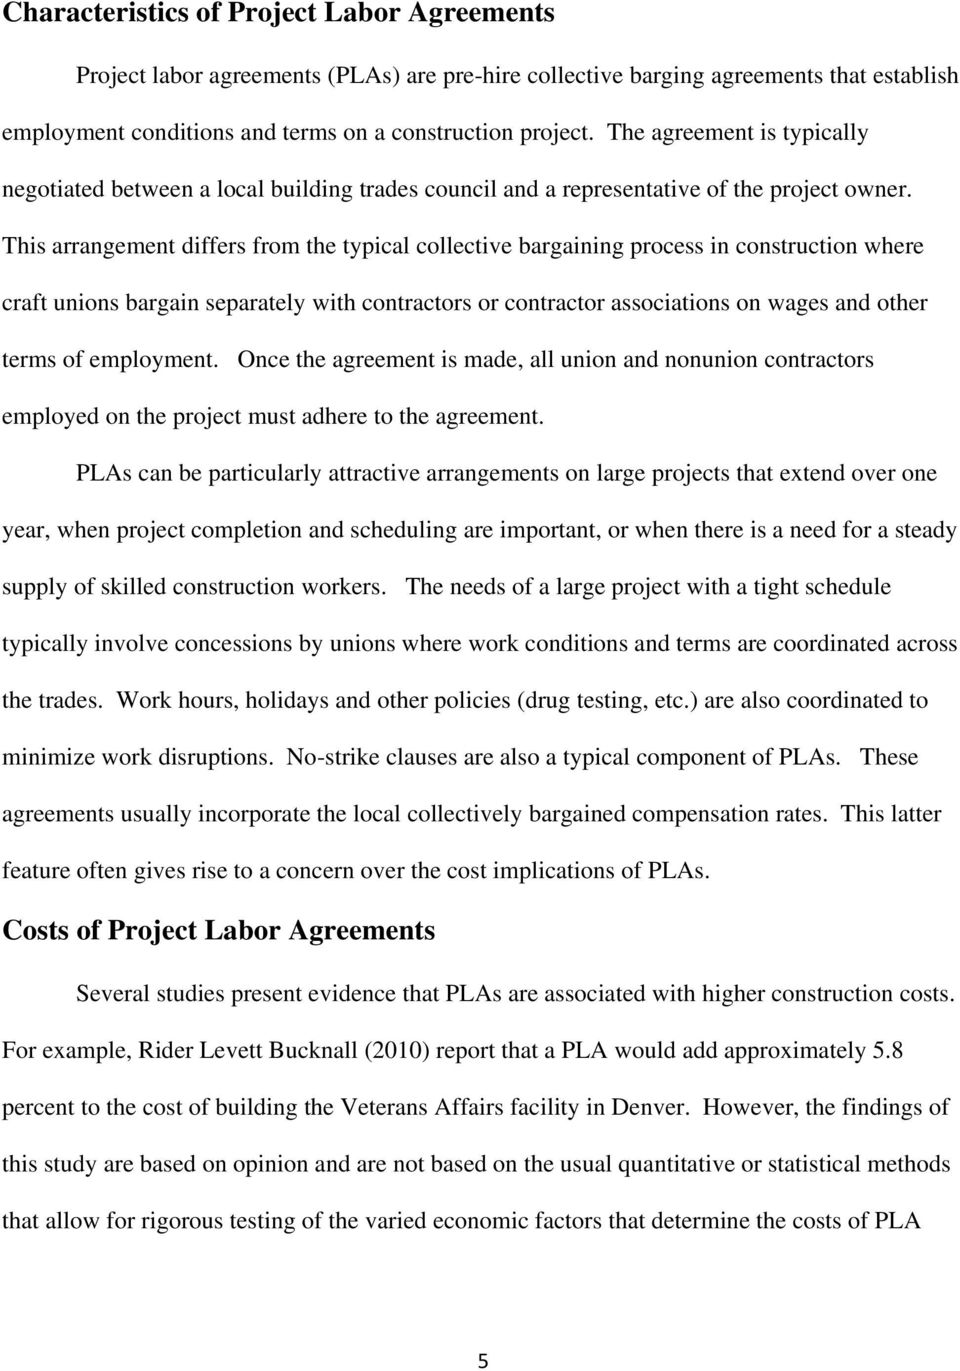 This arrangement differs from the typical collective bargaining process in construction where craft unions bargain separately with contractors or contractor associations on wages and other terms of